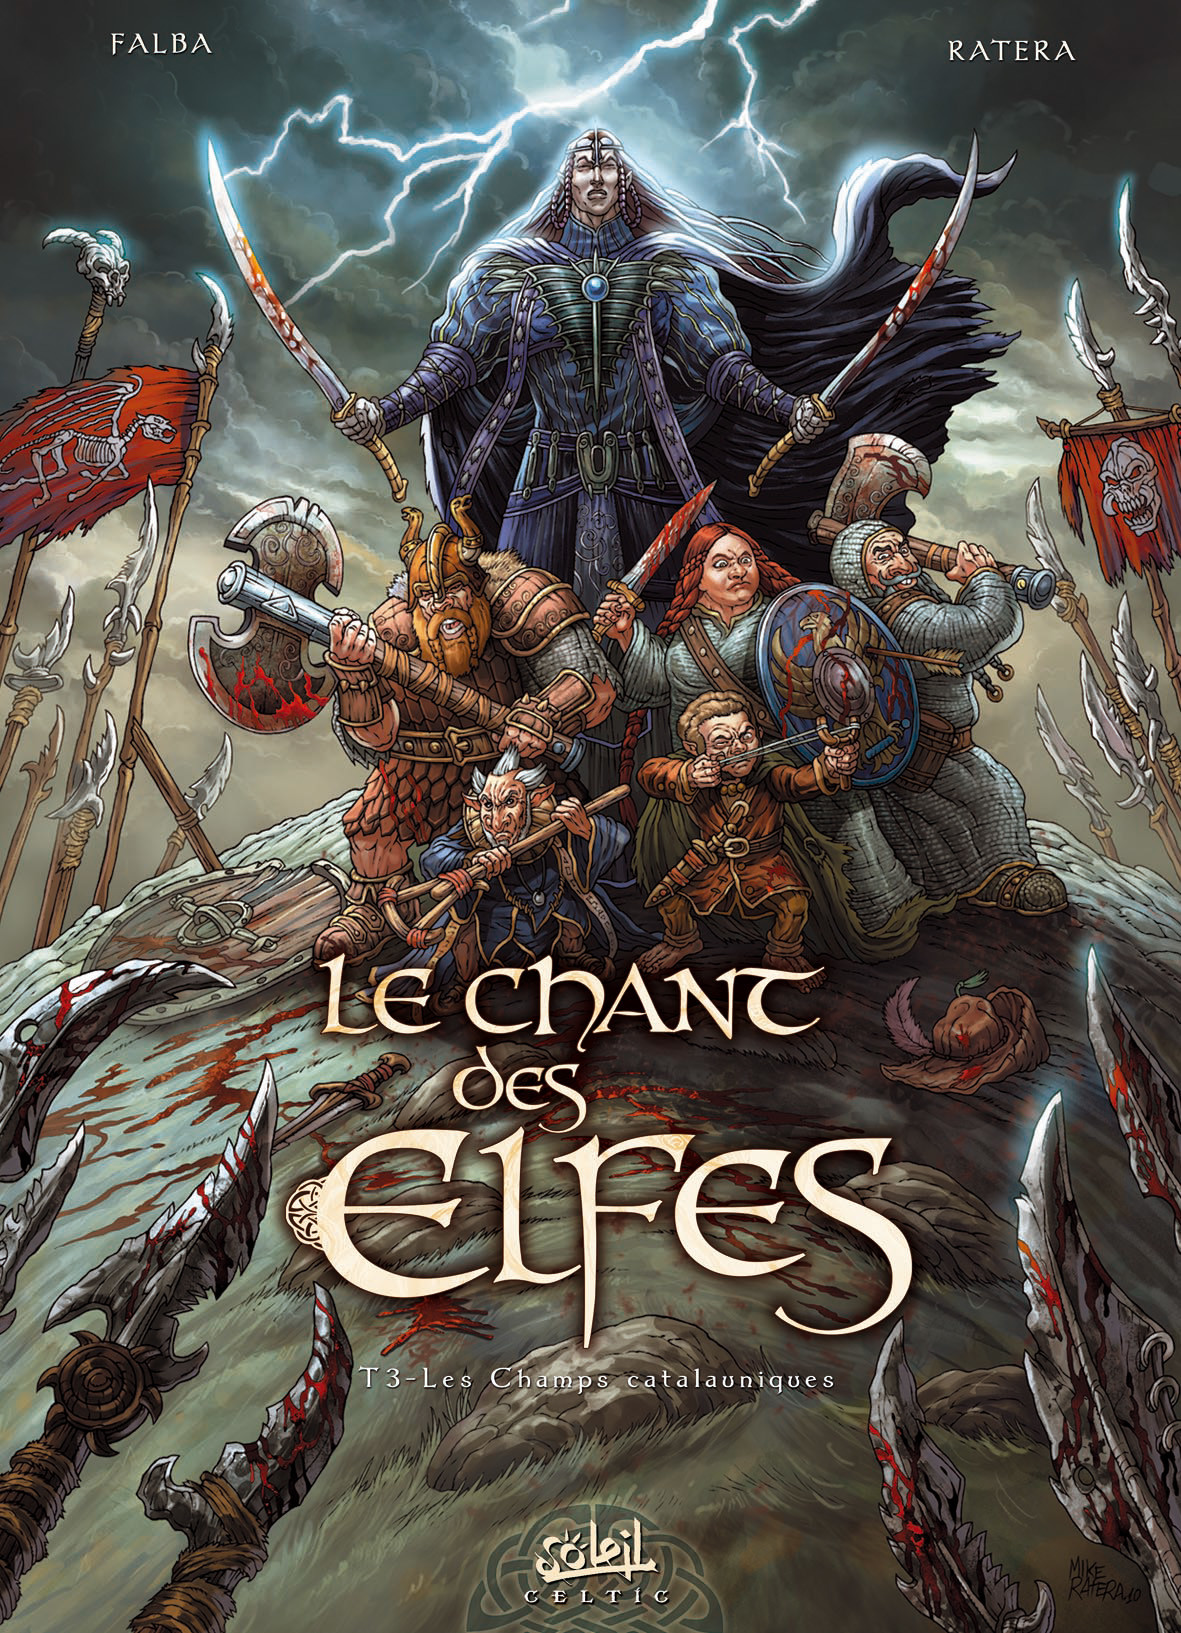 Mike ratera chant des elfes t3 cover logo